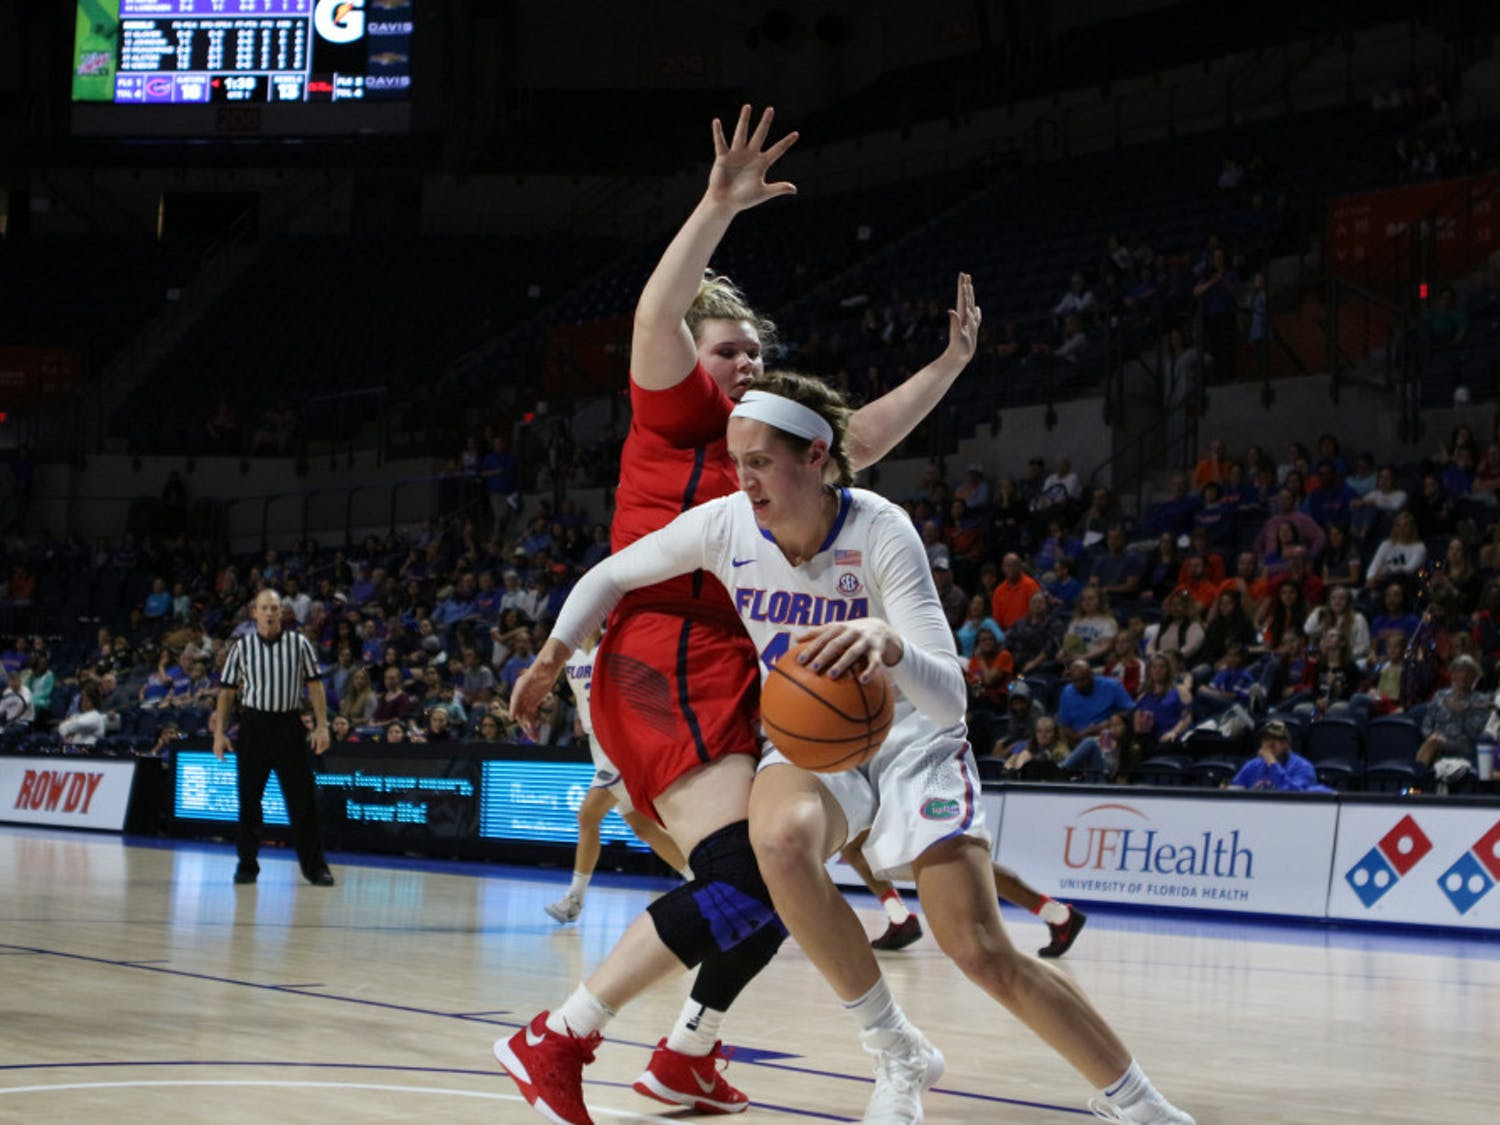 Forward Haley Lorenzen played her final game as a Gator Wednesday with 14 points against Ole Miss.